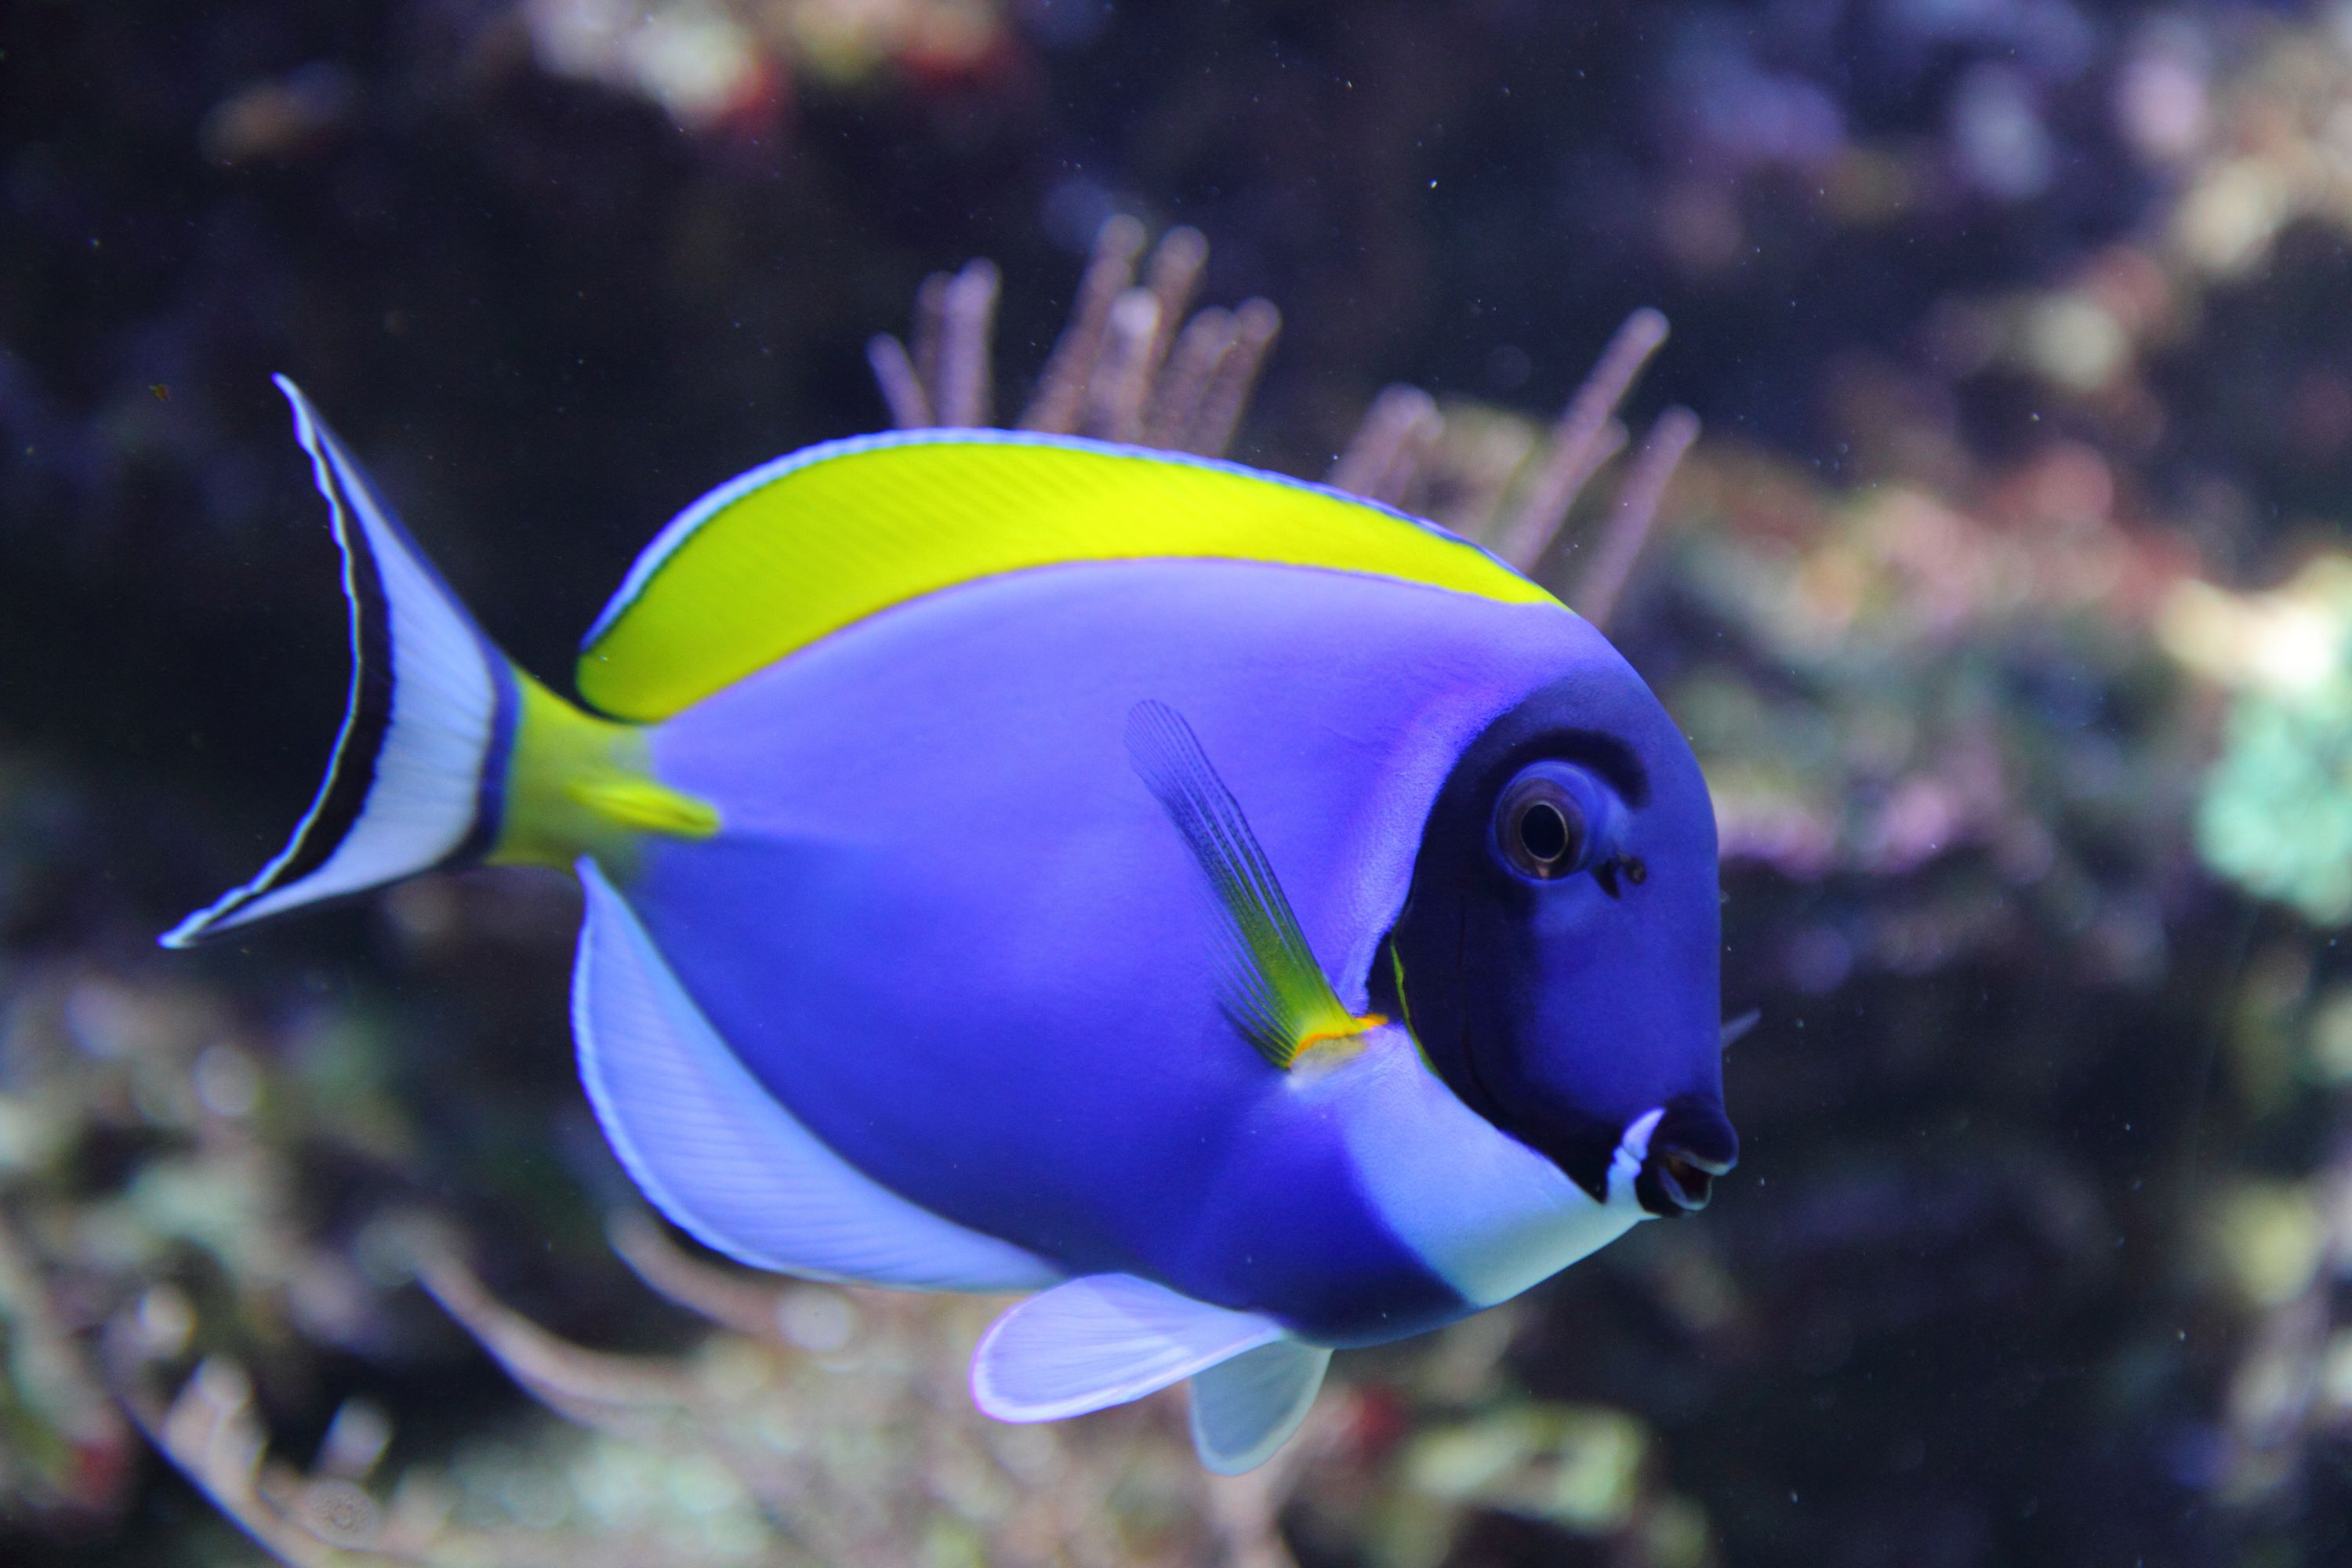 Generally caring for saltwater fish is more challenging for Exotic tropical fish